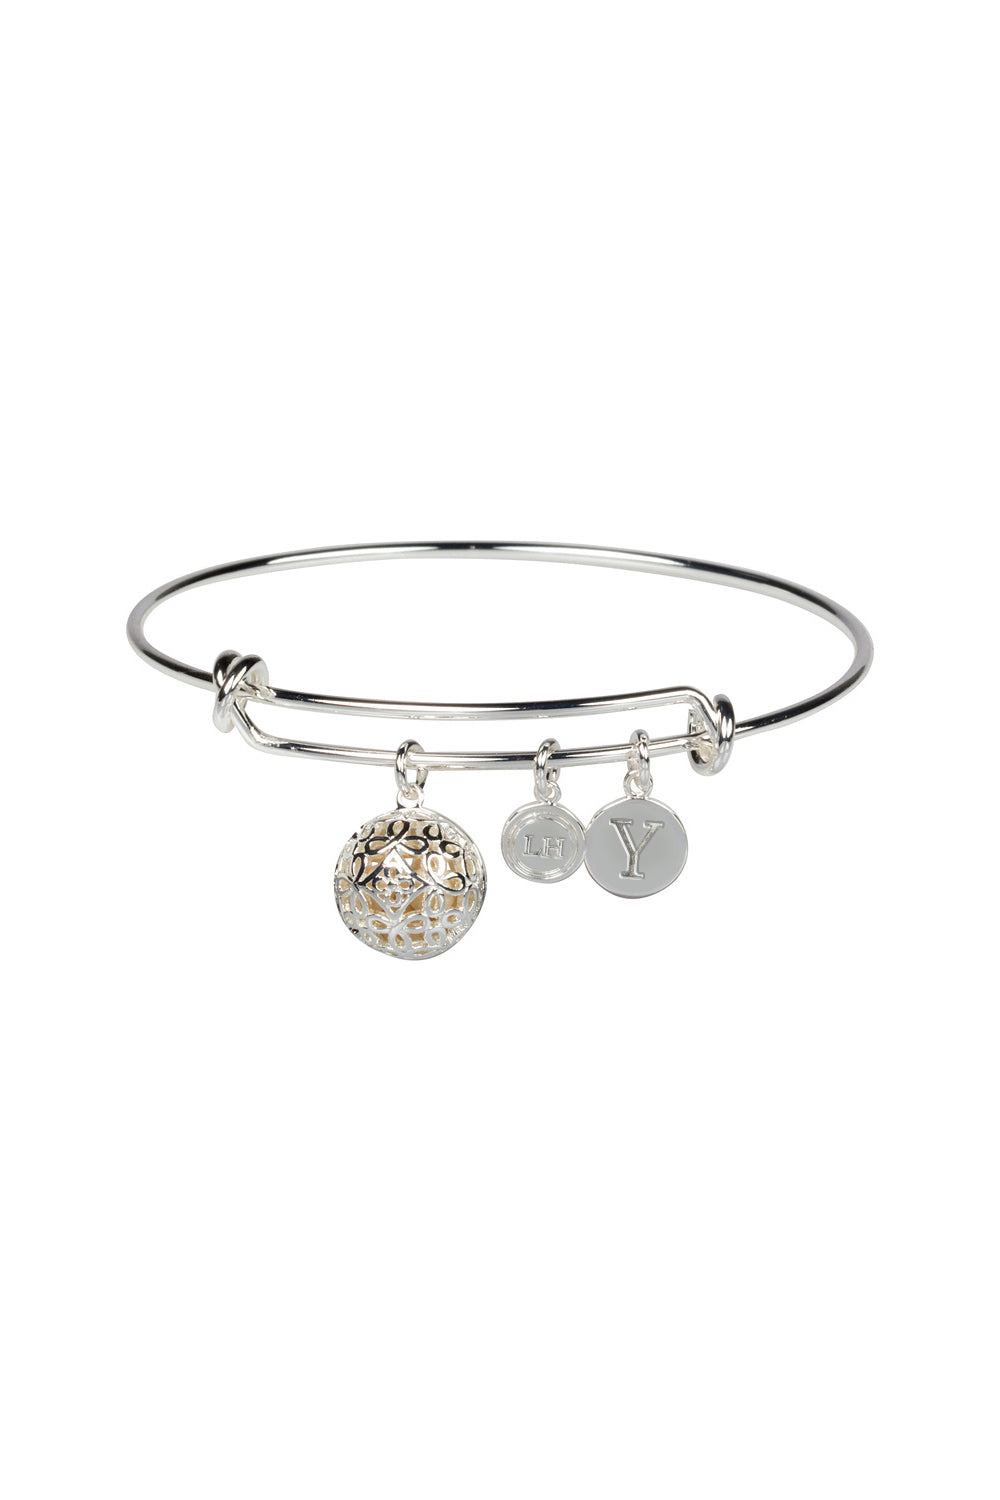 """Y"" Initial Fragrance Bangle with Silver Tone Charm"